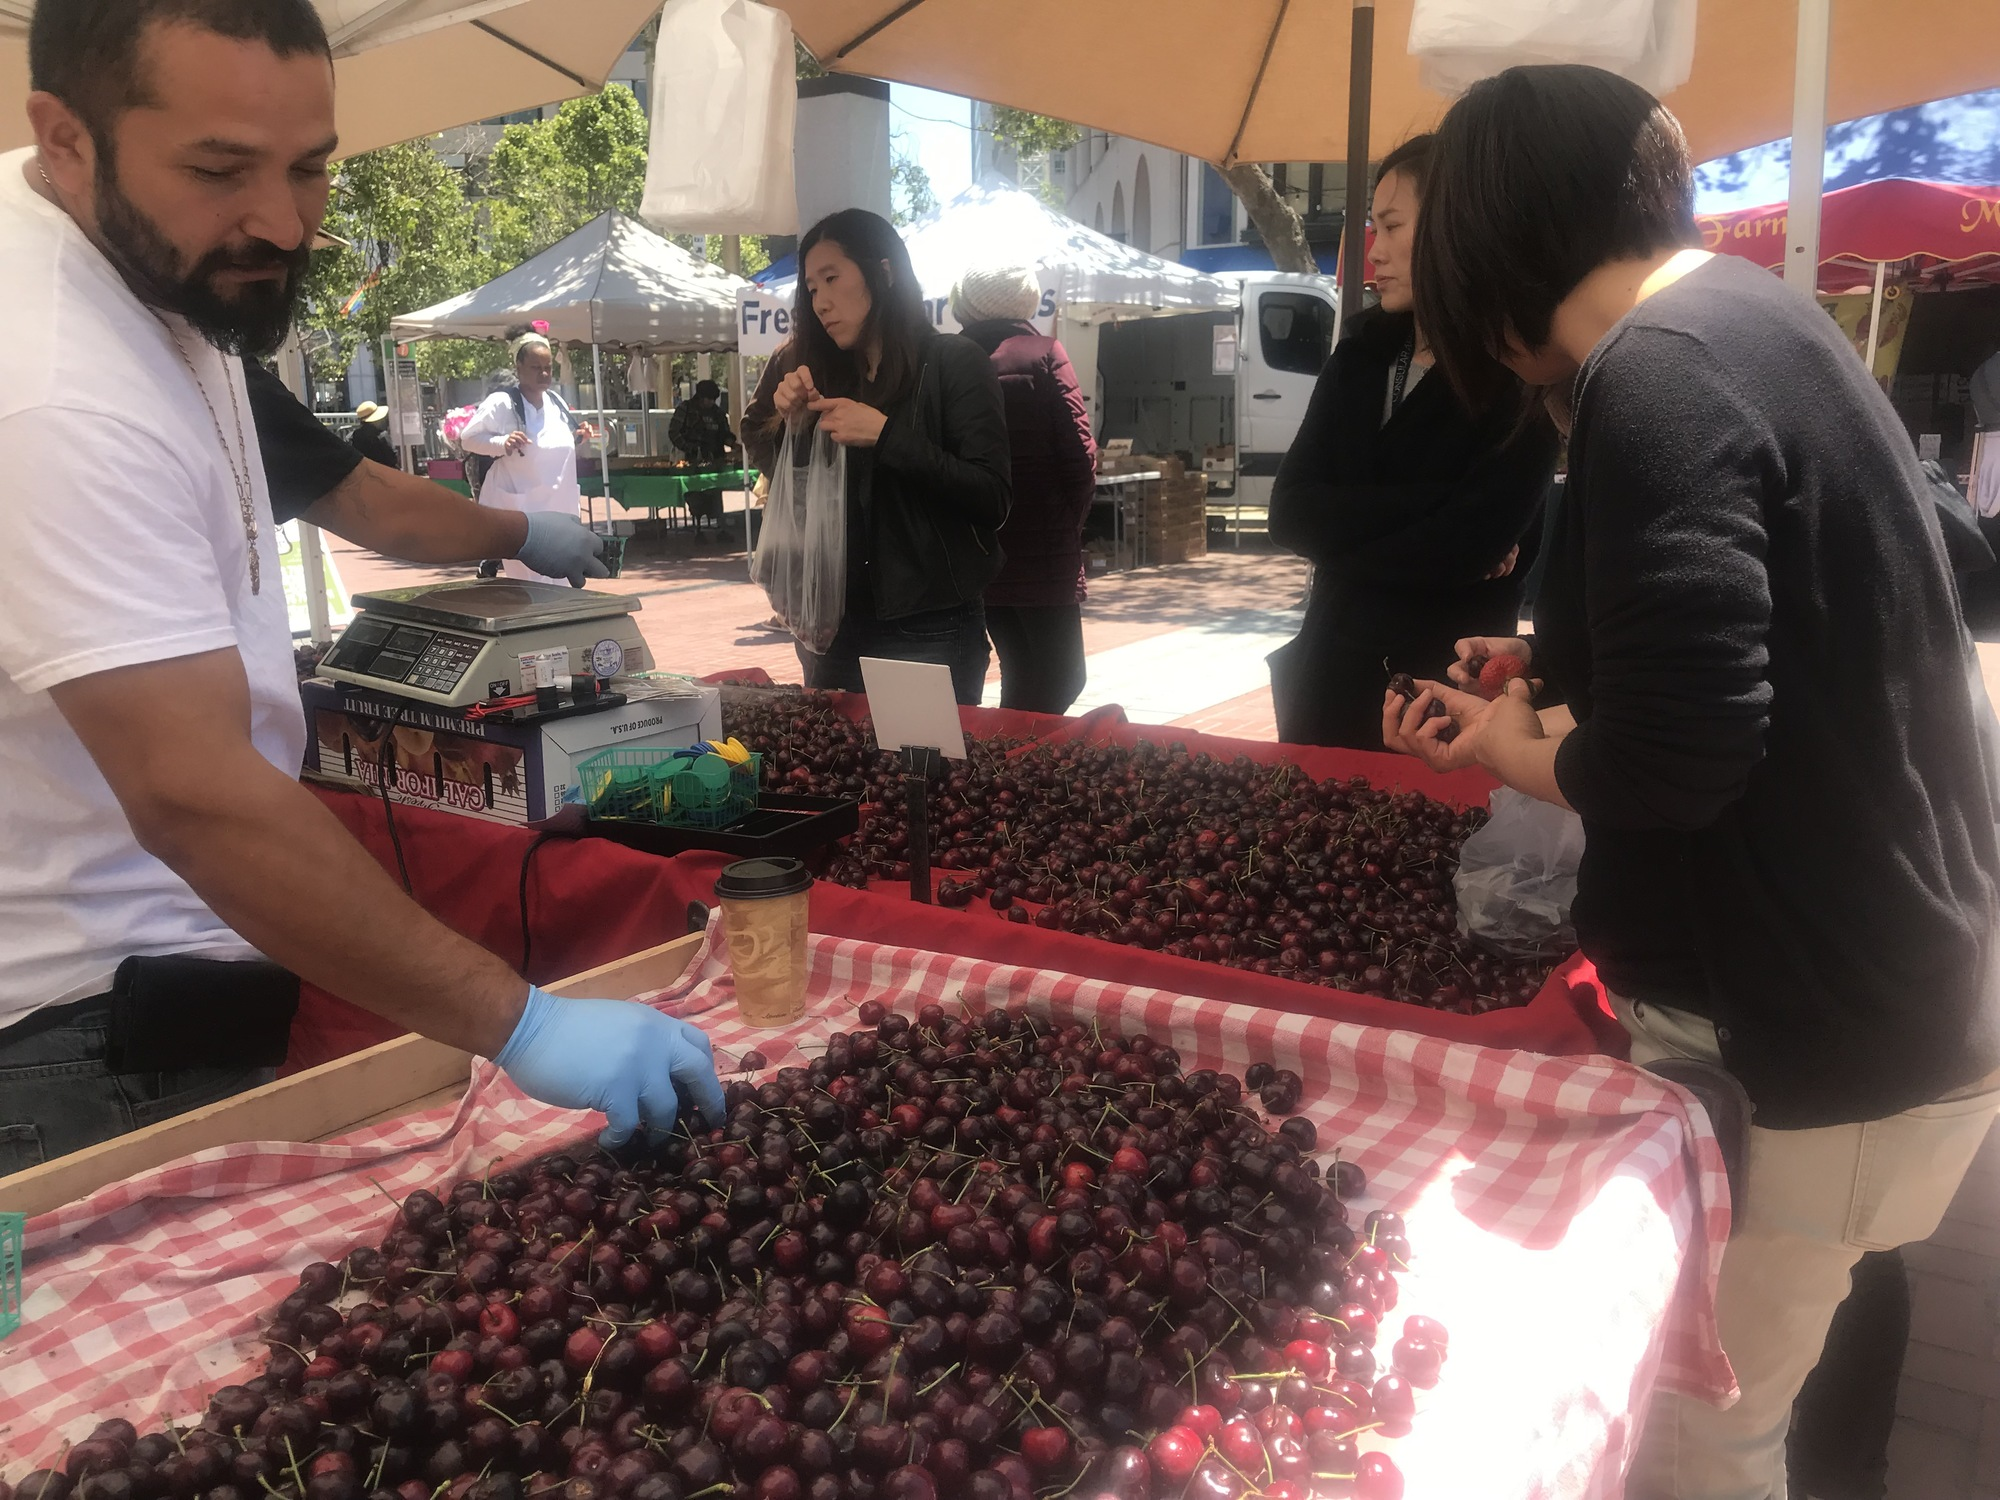 A vendor selling cherries at the market on Friday, June 7.